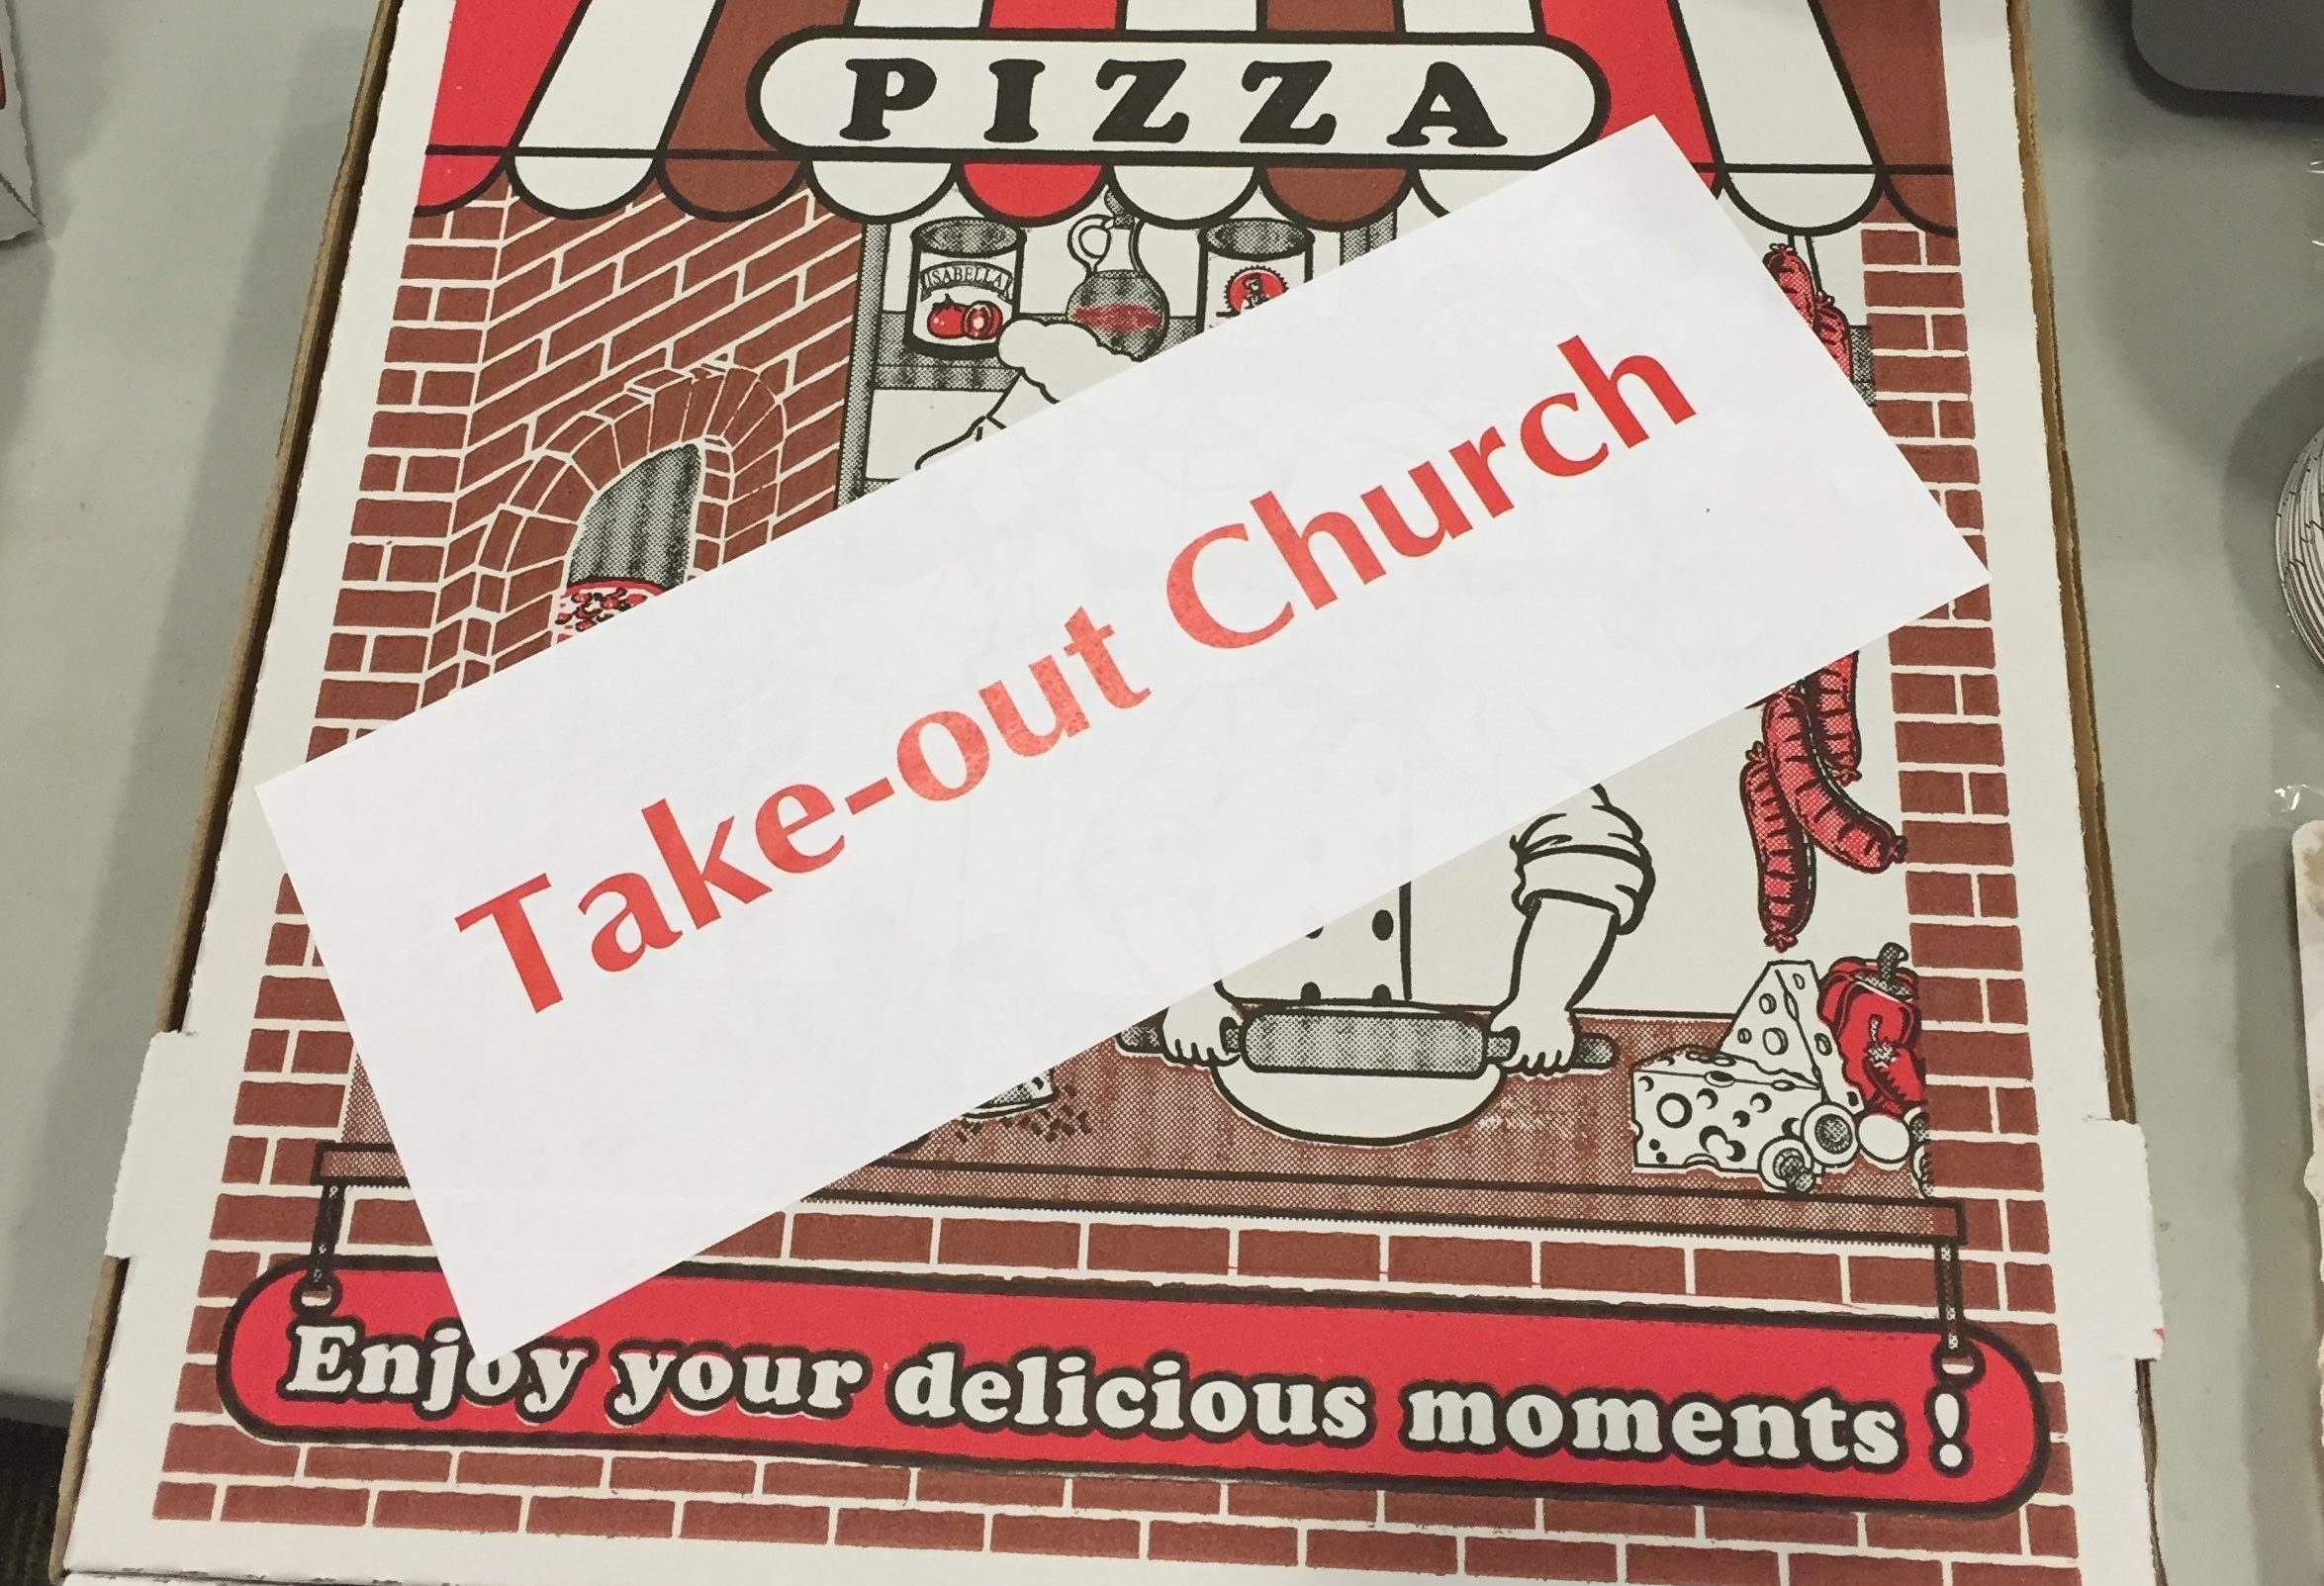 Take Out Church: A Summer Tool for Home and Traveling